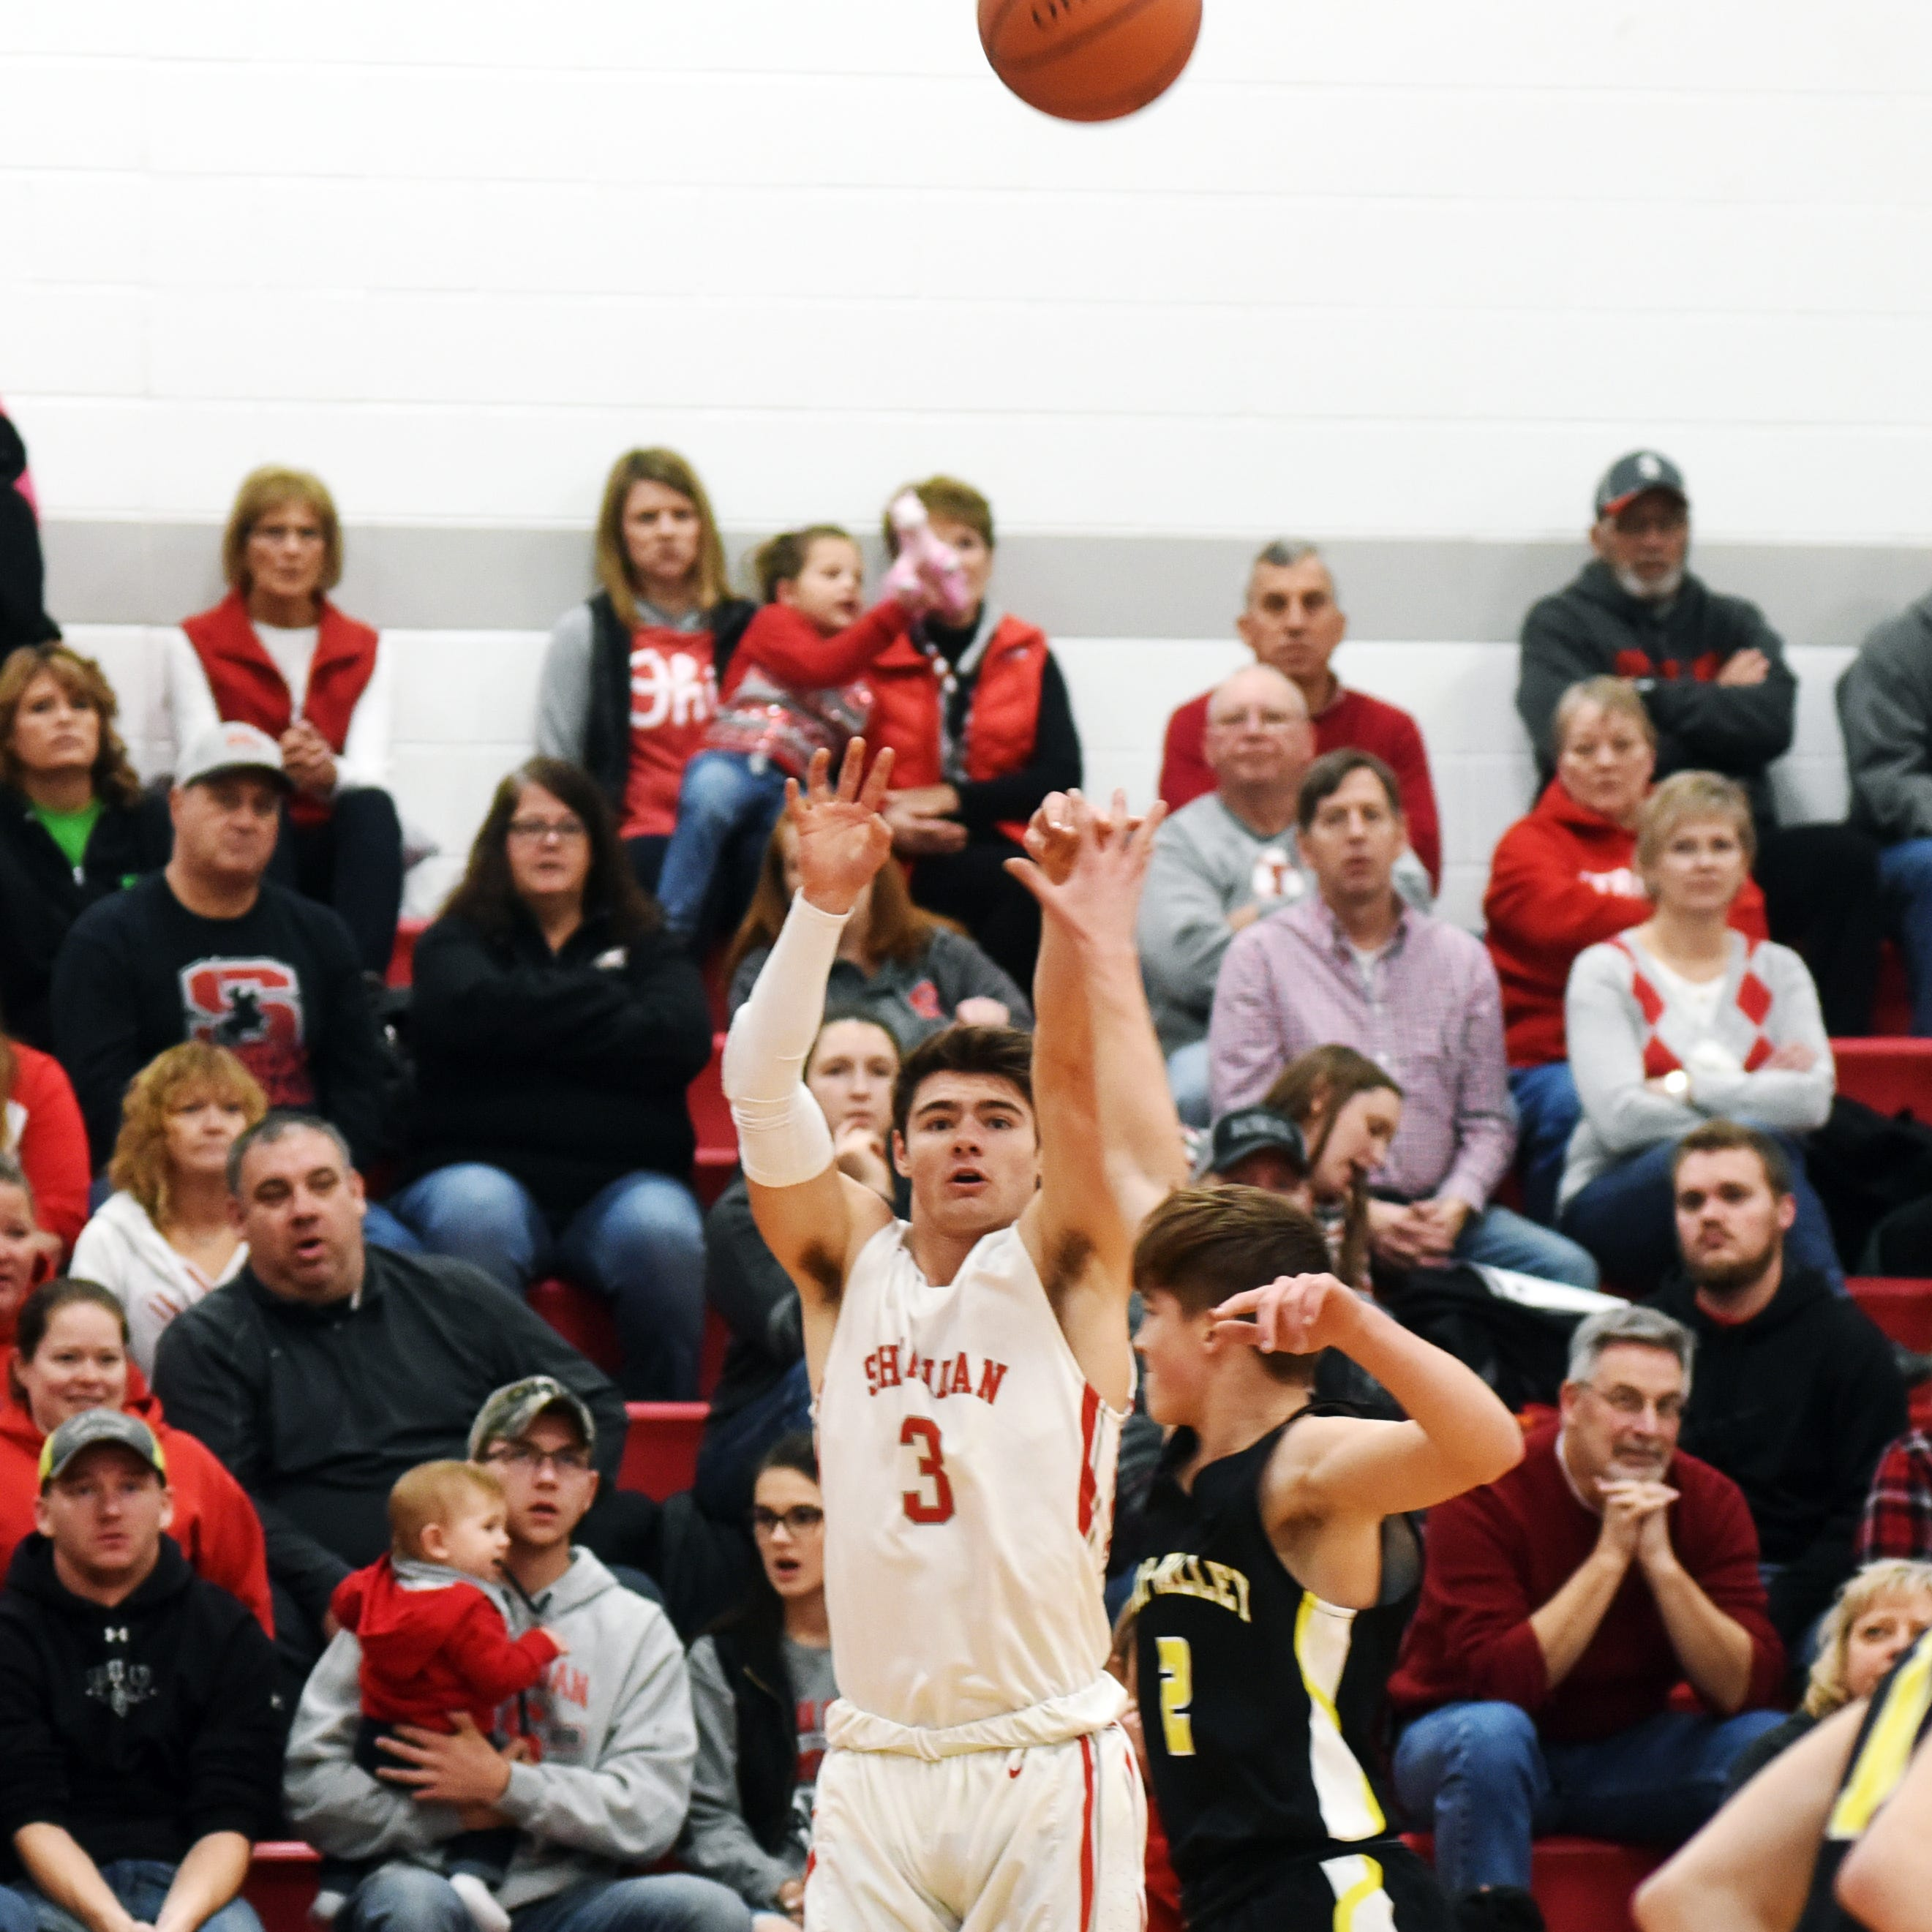 Giving em' Heller: Sheridan sharpshooter clutch against Tri-Valley